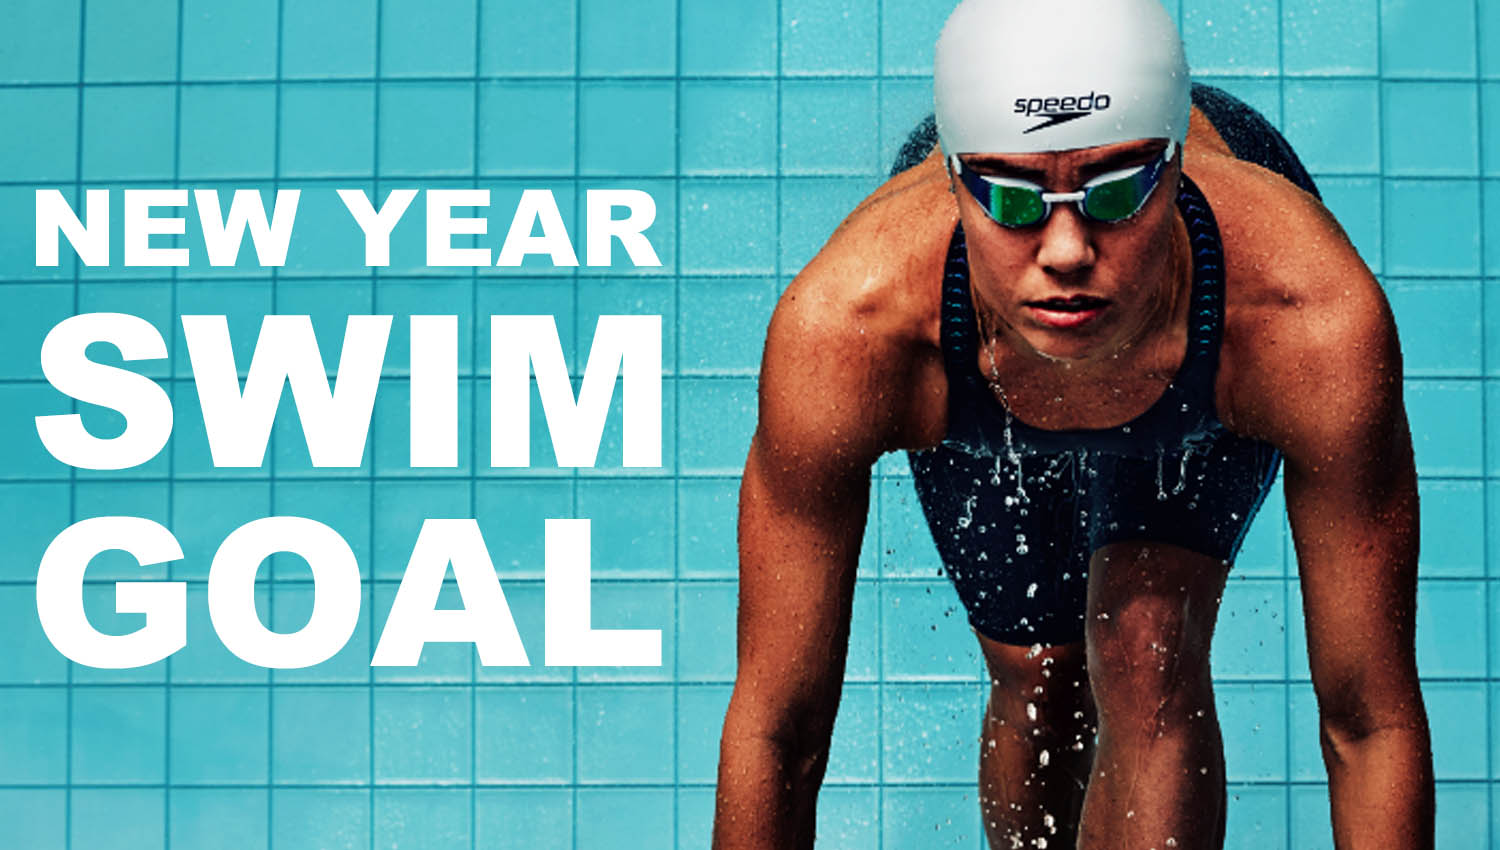 New year swim goal The Swimet